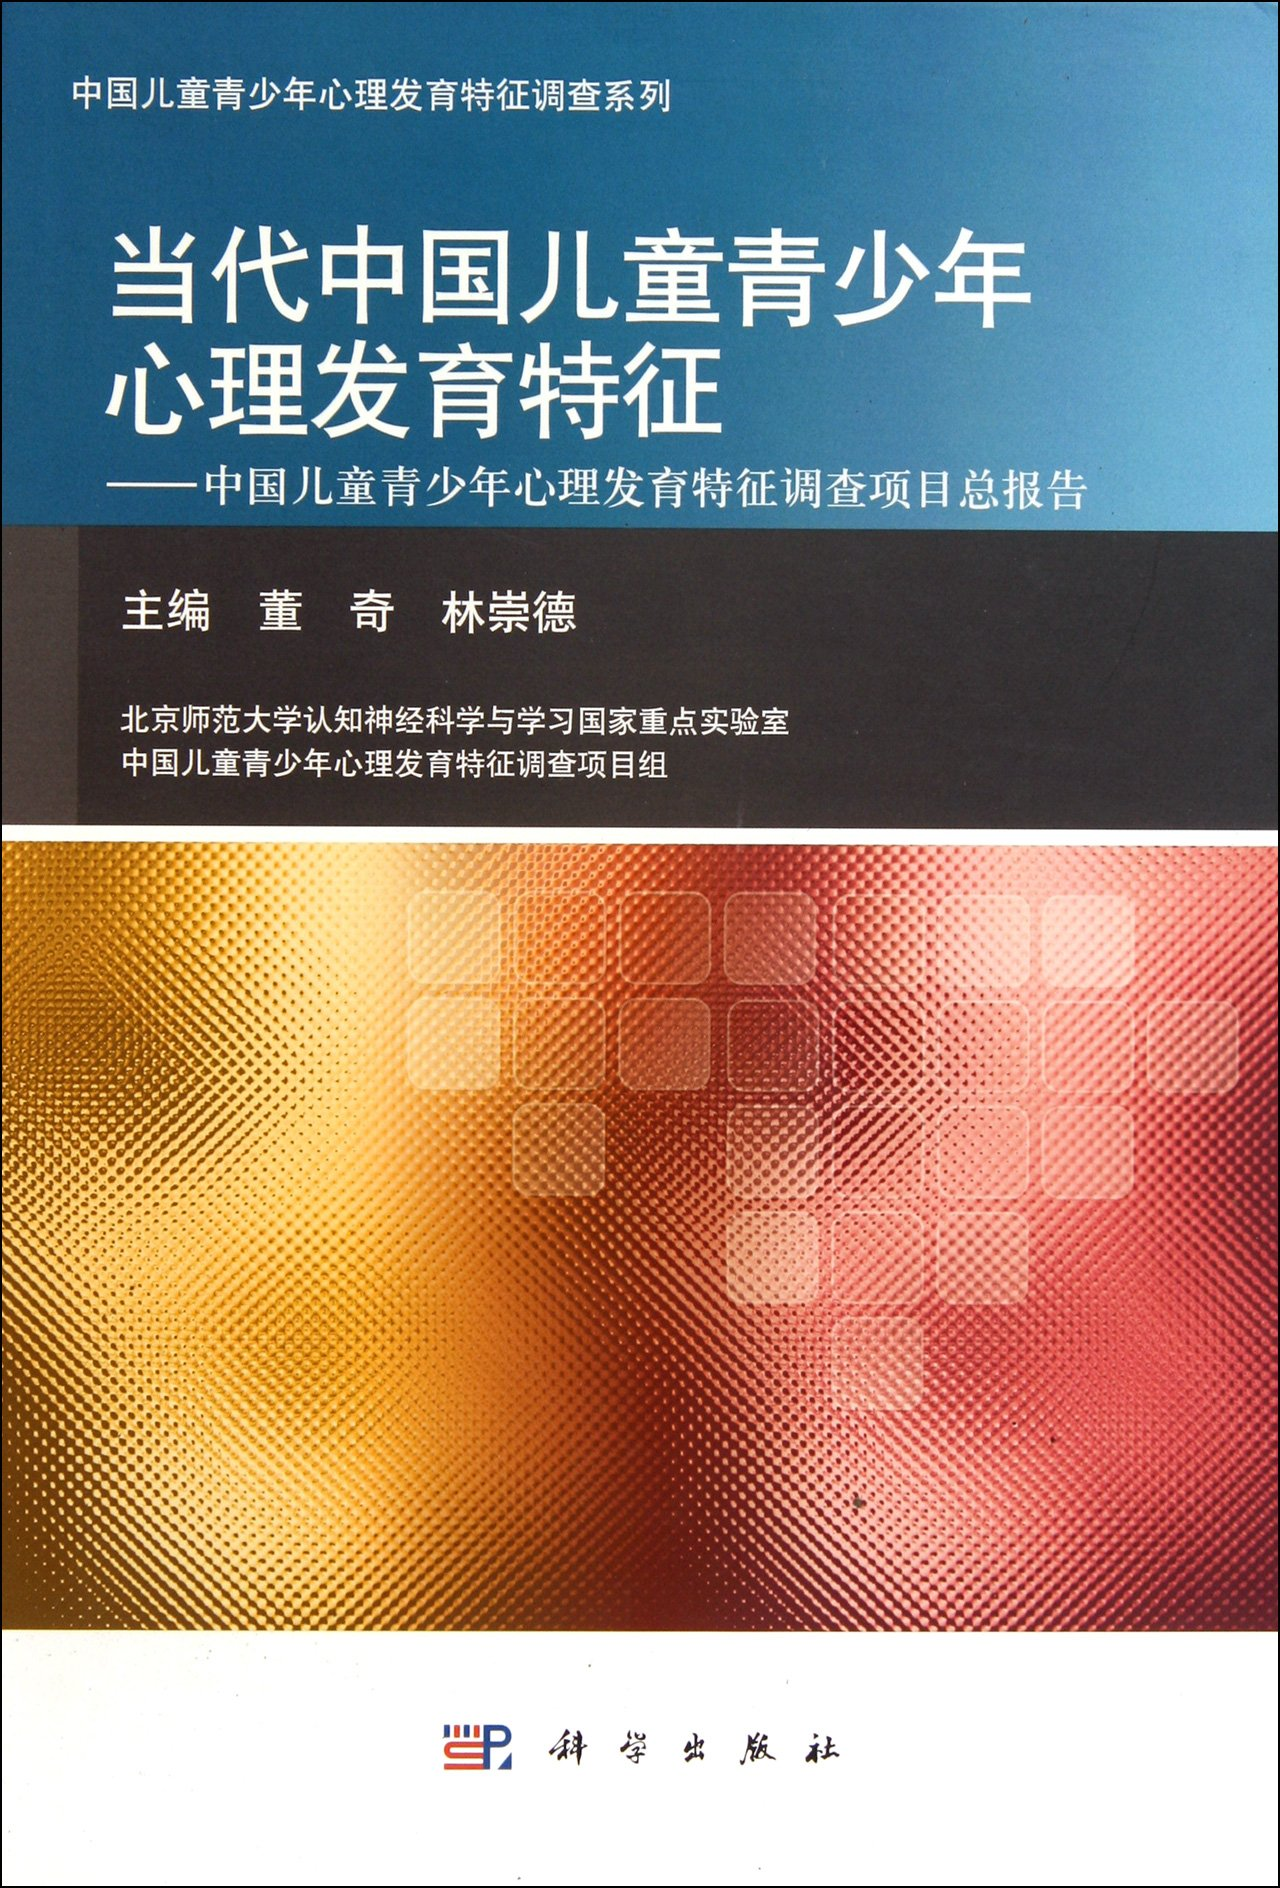 Psychological development of contemporary Chinese children and adolescents characteristics - characteristics of Chinese children and adolescents psychological development survey reports the total project(Chinese Edition) pdf epub